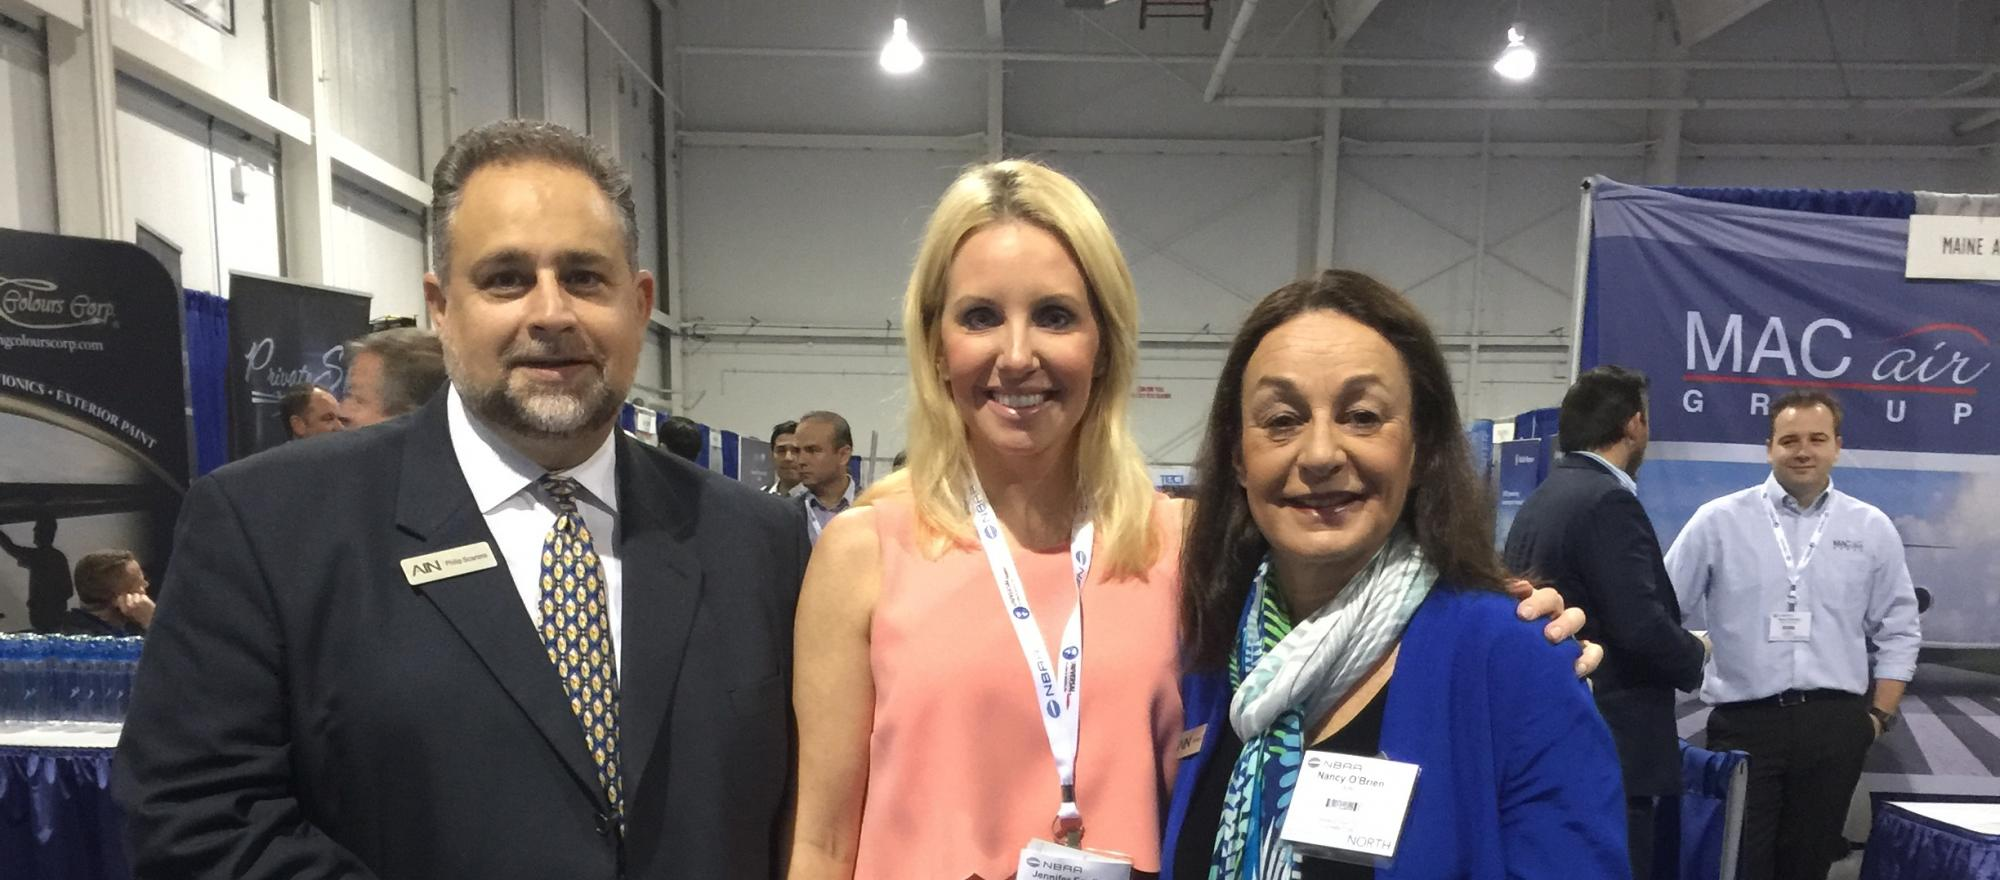 BJT editorial director Jennifer English along with director of events Philip Scarano and associate publisher Nancy O'Brien